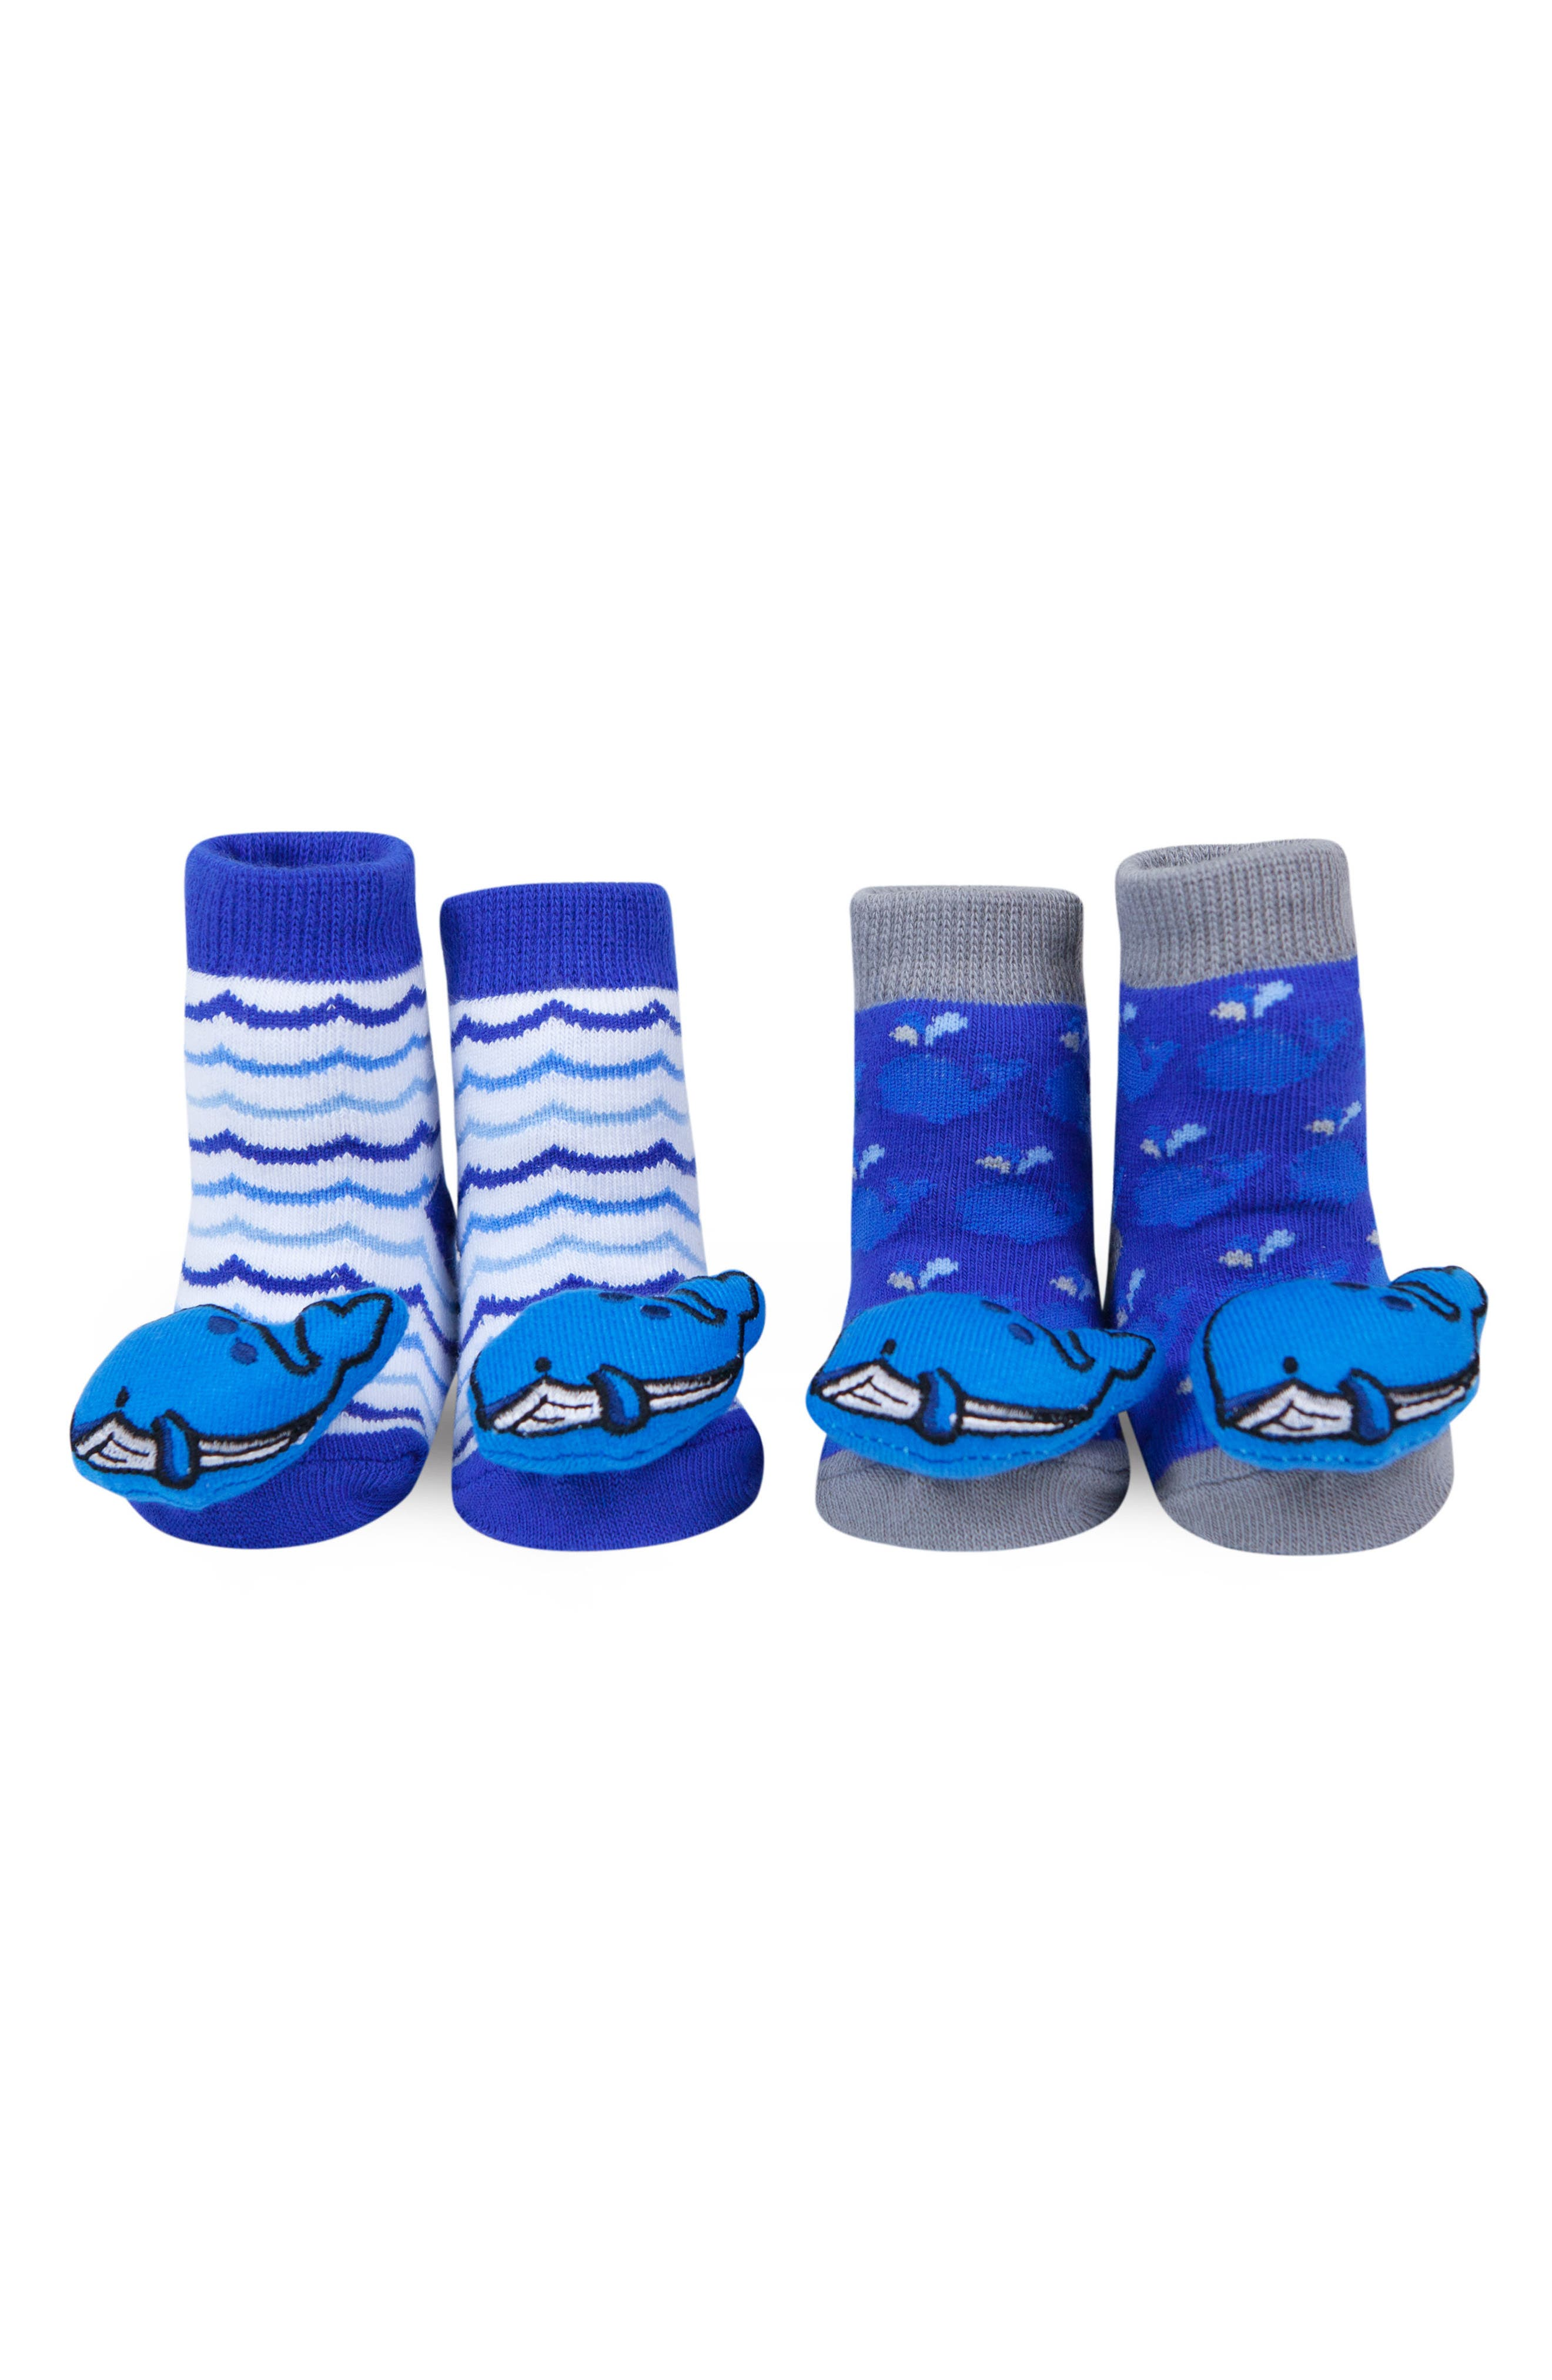 & Friends Whales 2-Pack Rattle Socks,                             Main thumbnail 1, color,                             424